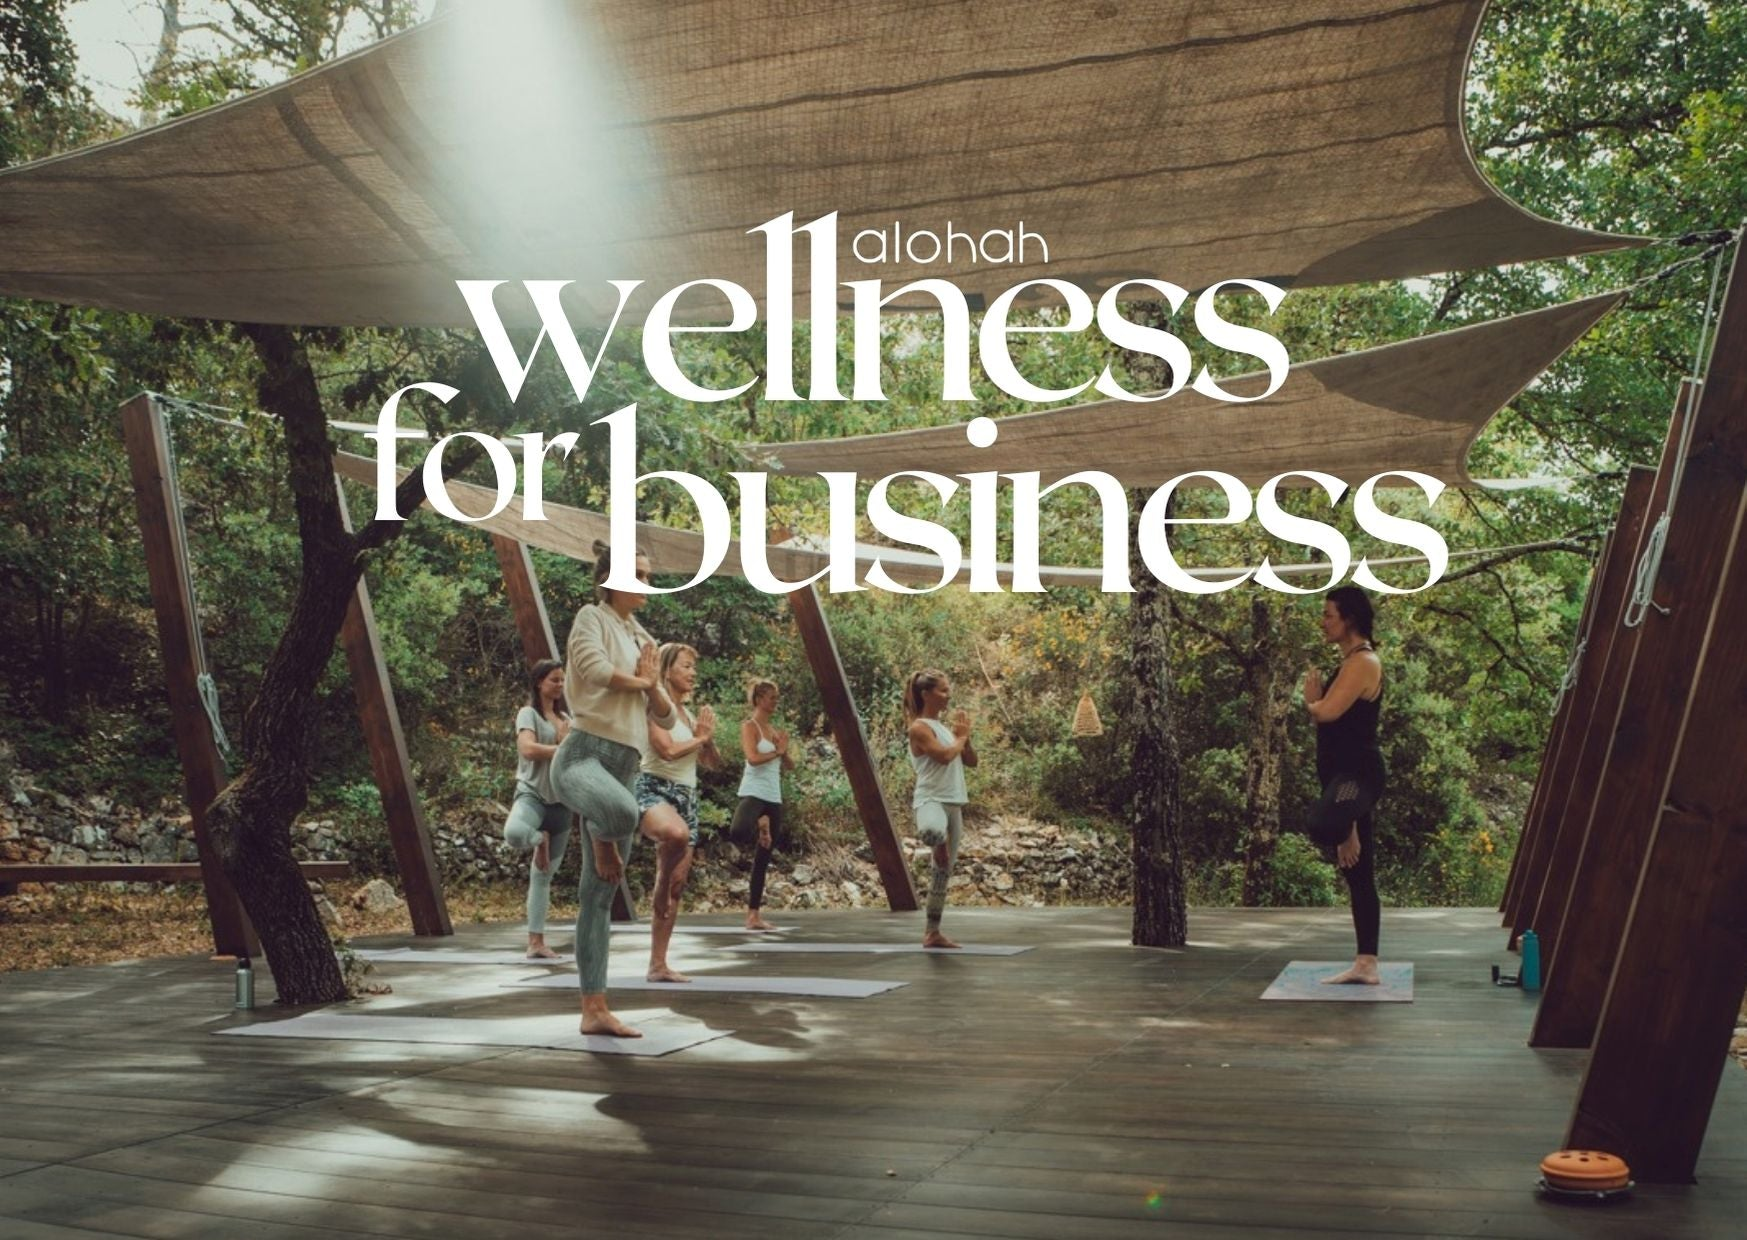 wellness-for-business-alohah